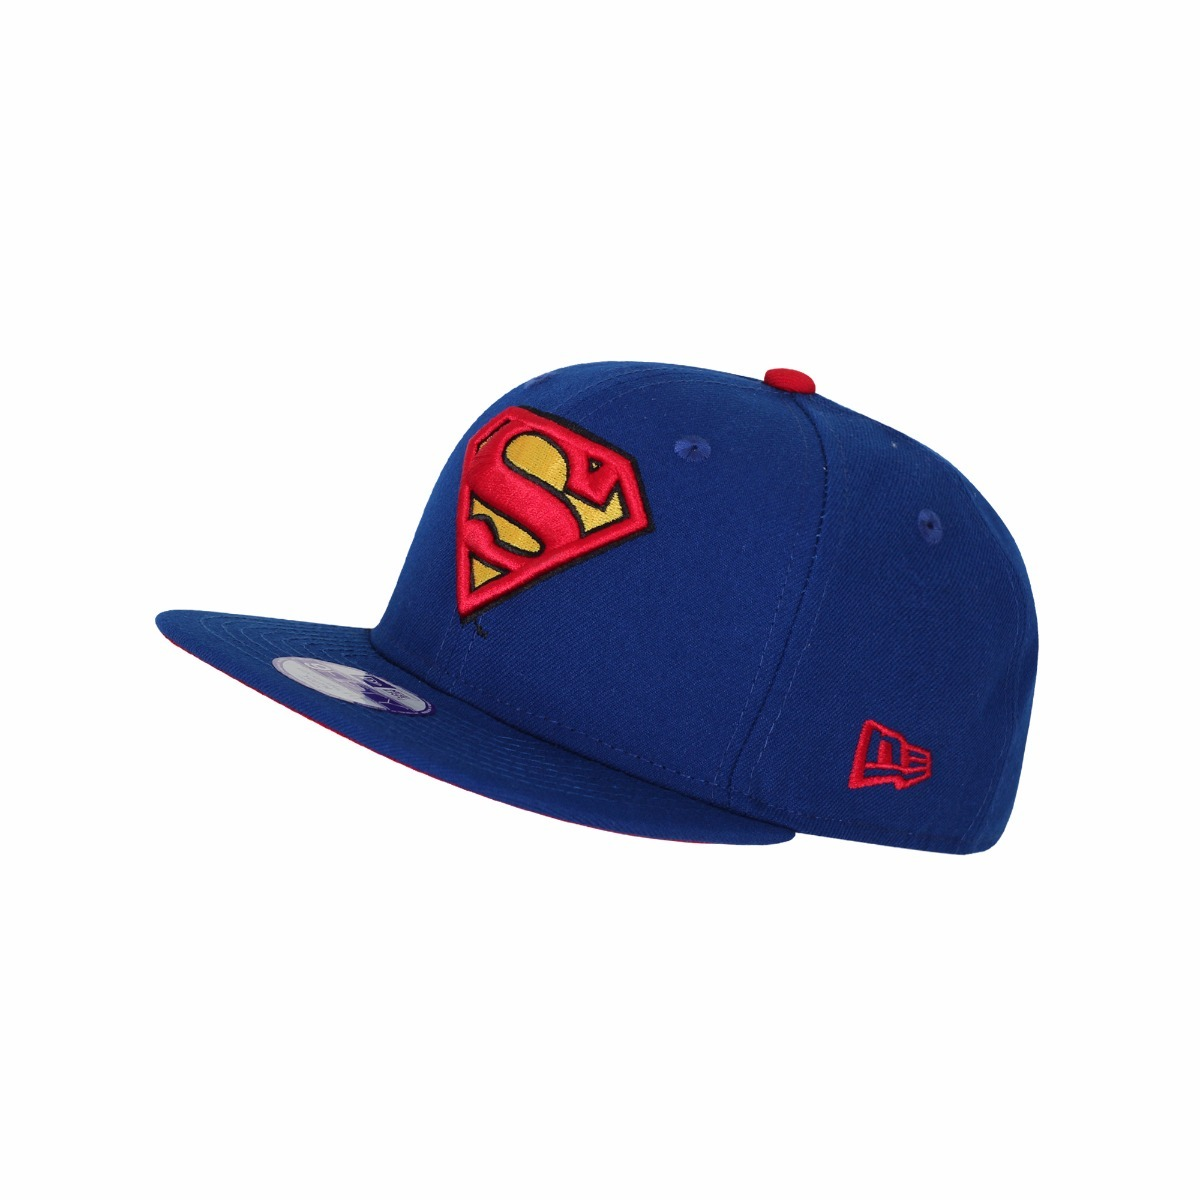 Gorra New Era 9fifty Superman - Niño -   449.00 en Mercado Libre cf620f46111